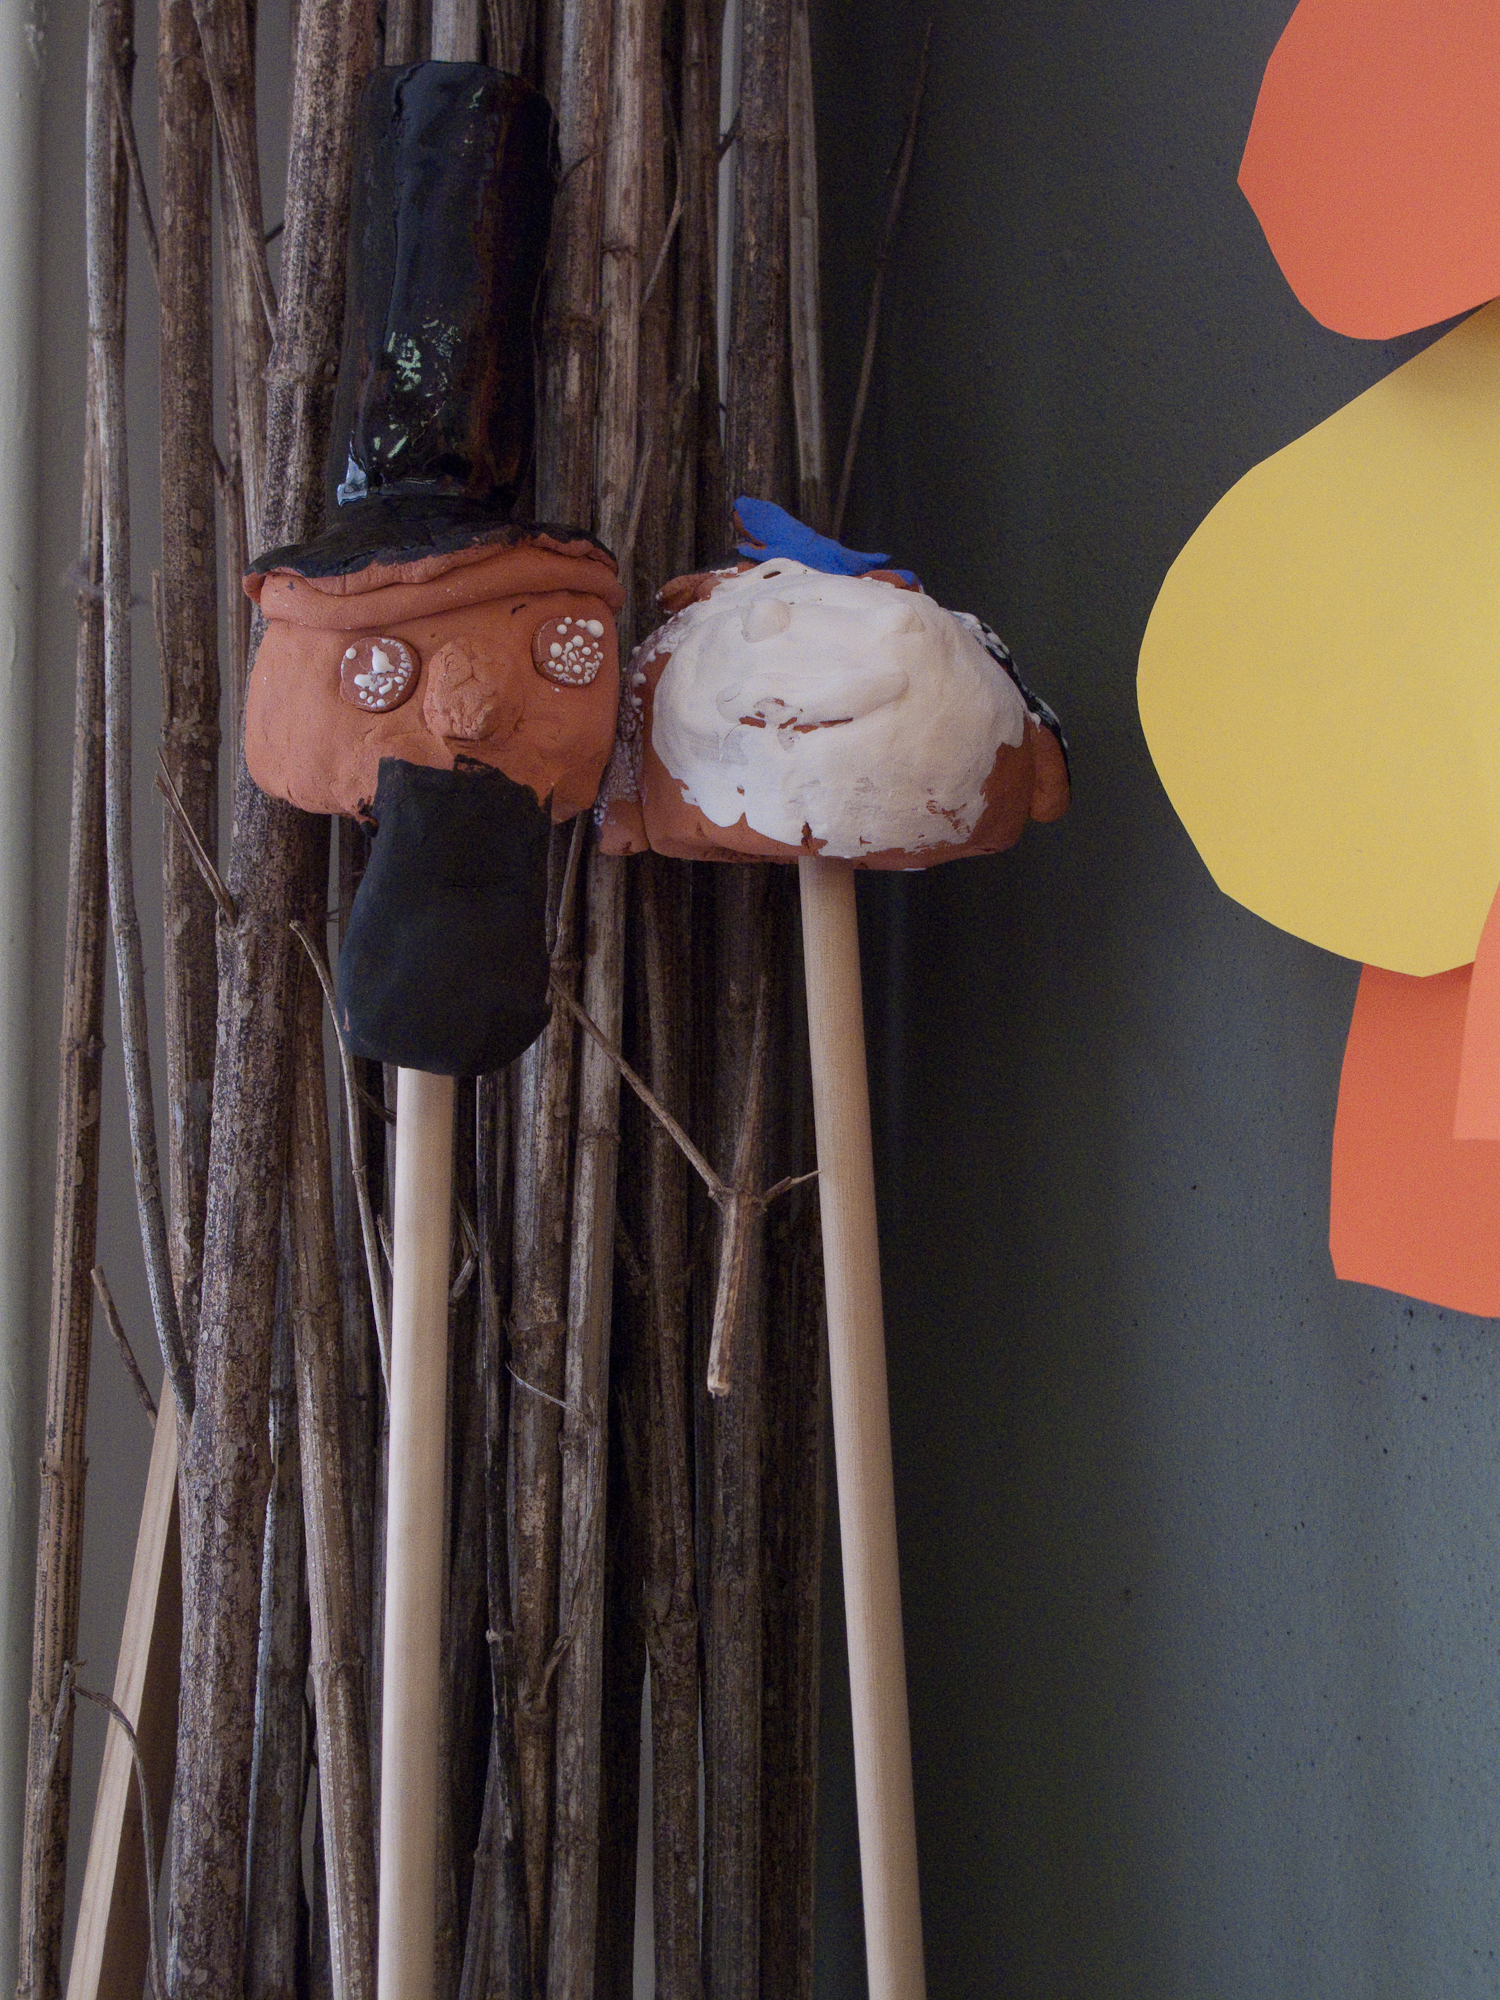 Puppets.     Castletree Camp.  2012  Ceramic, wood